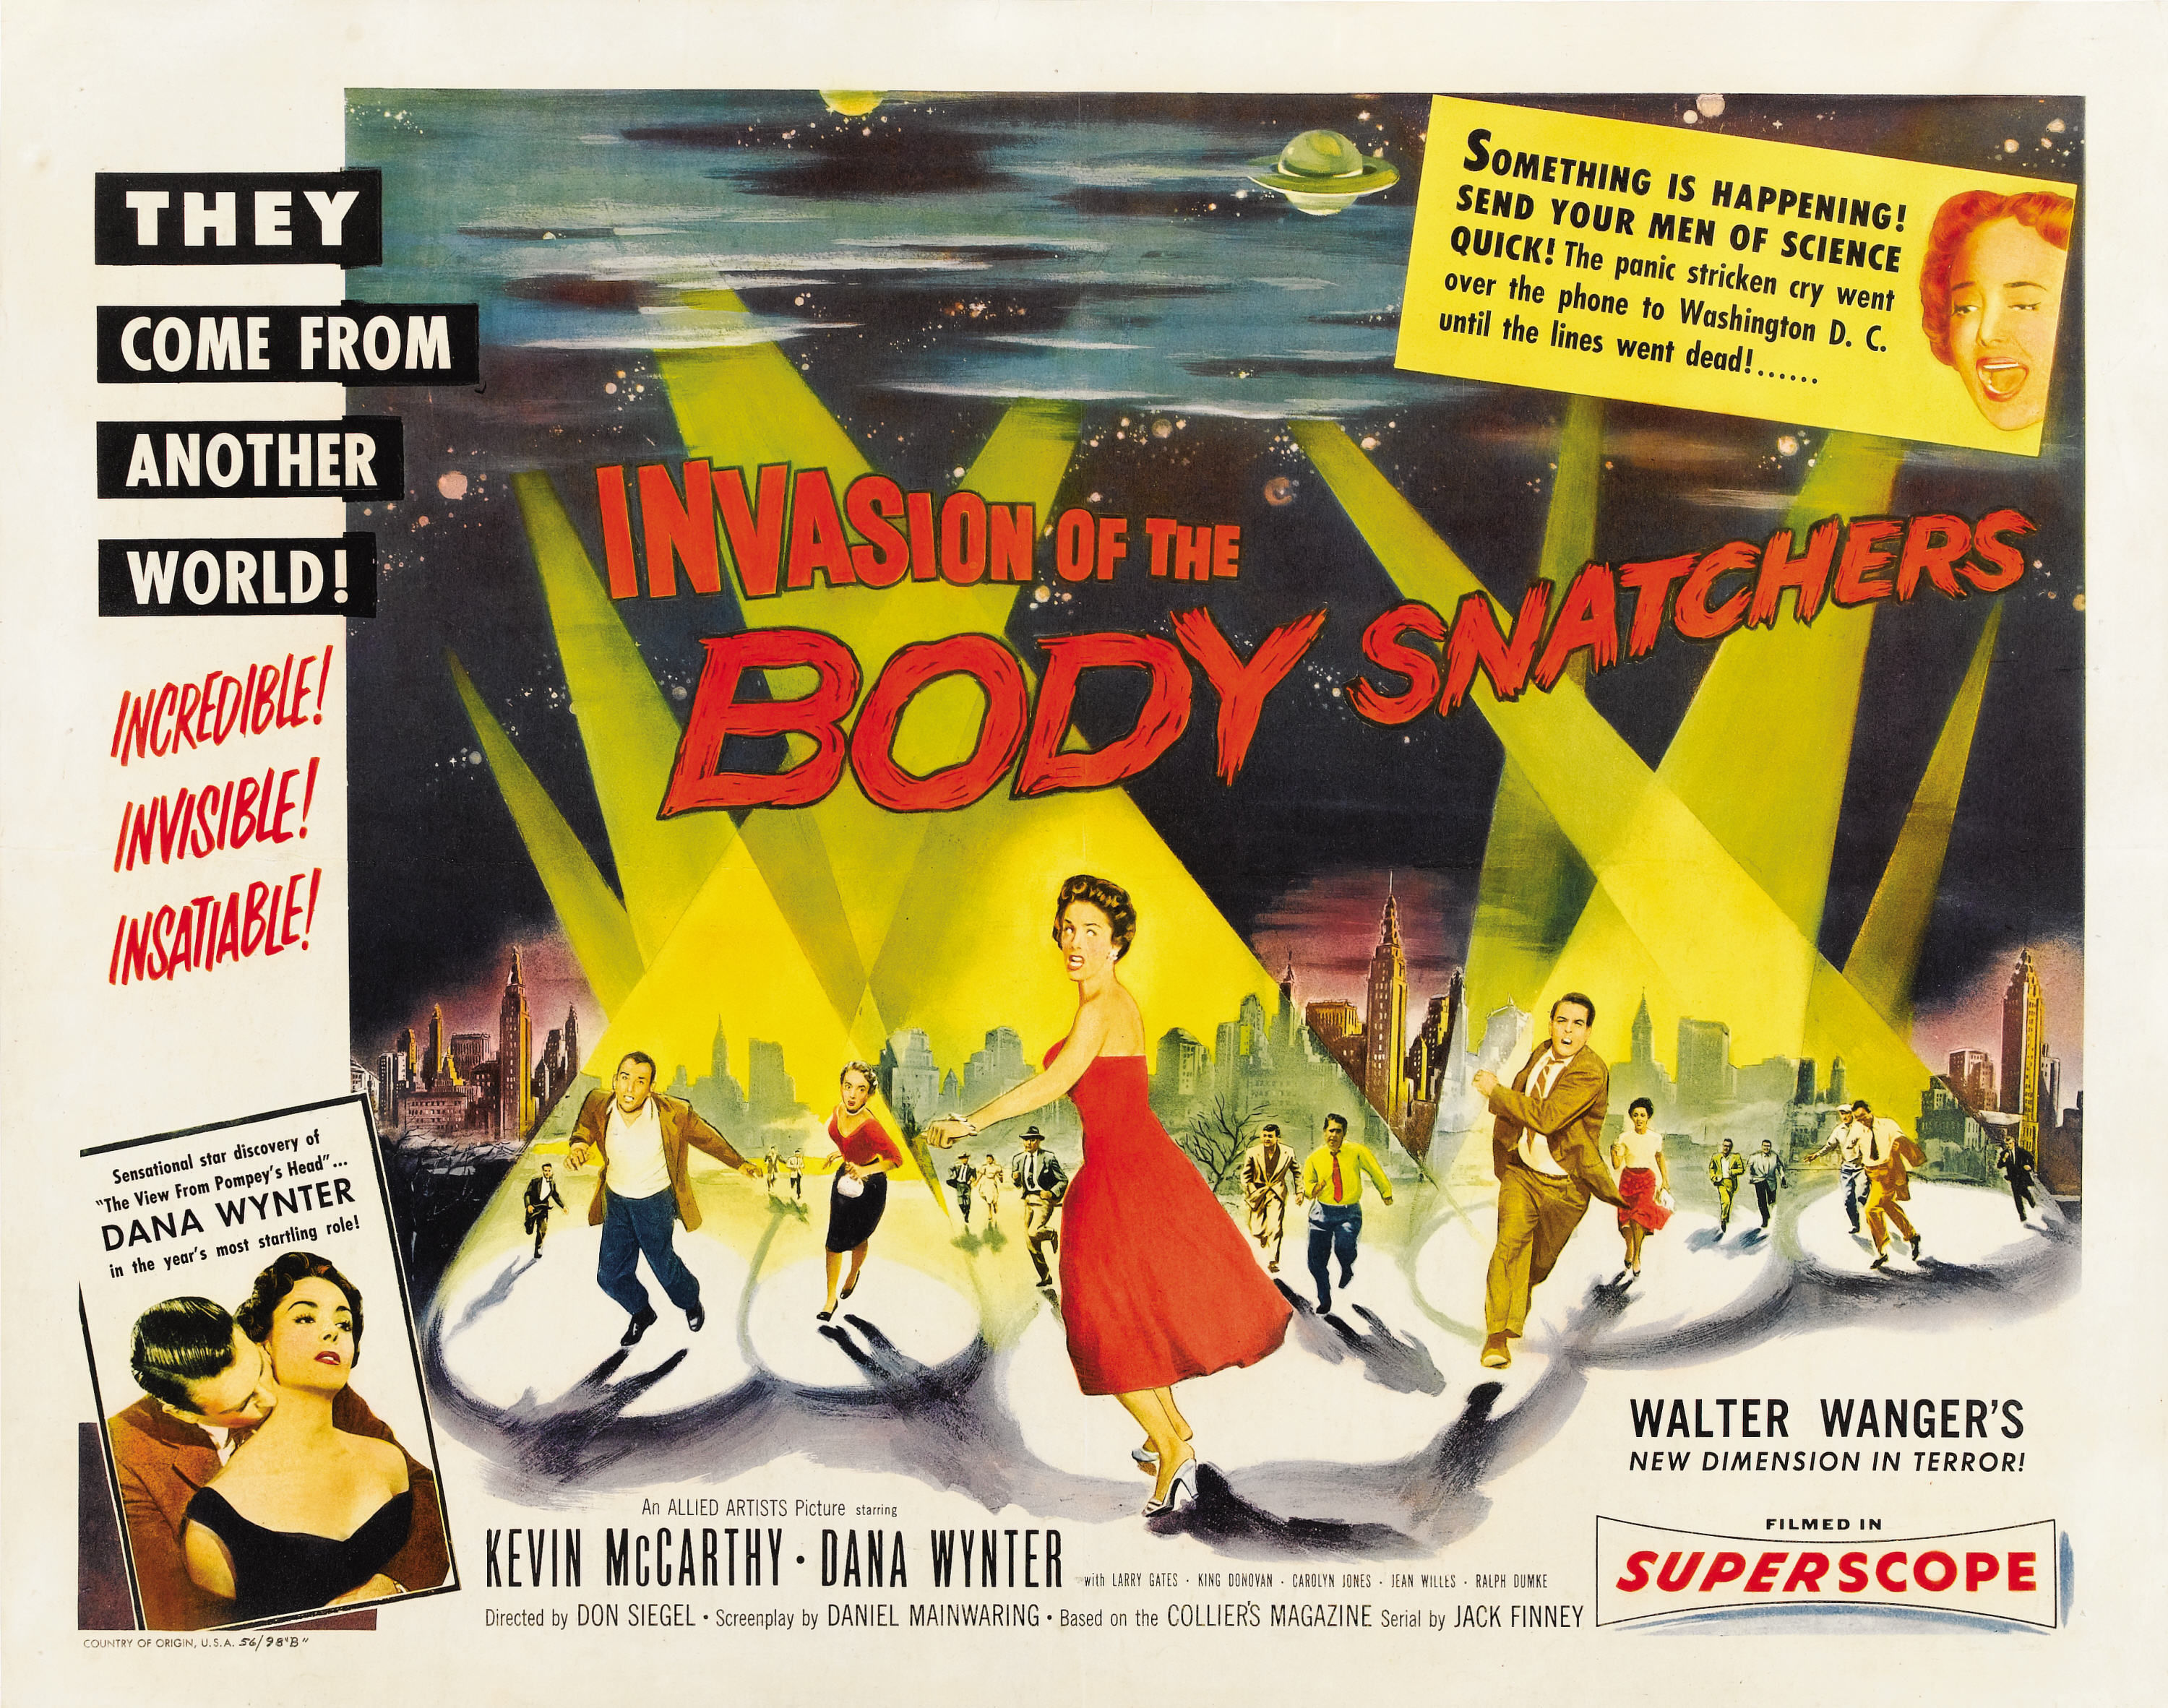 a depiction of american culture in the movie invasion of the body snatchers Pod people (also known as the body snatchers) is a nickname given to an alien species featured in the 1955 novel the body snatchers by jack finney, the 1956 film invasion of the body snatchers, the 1978 remake of the same name and the 1993 film body snatchers.